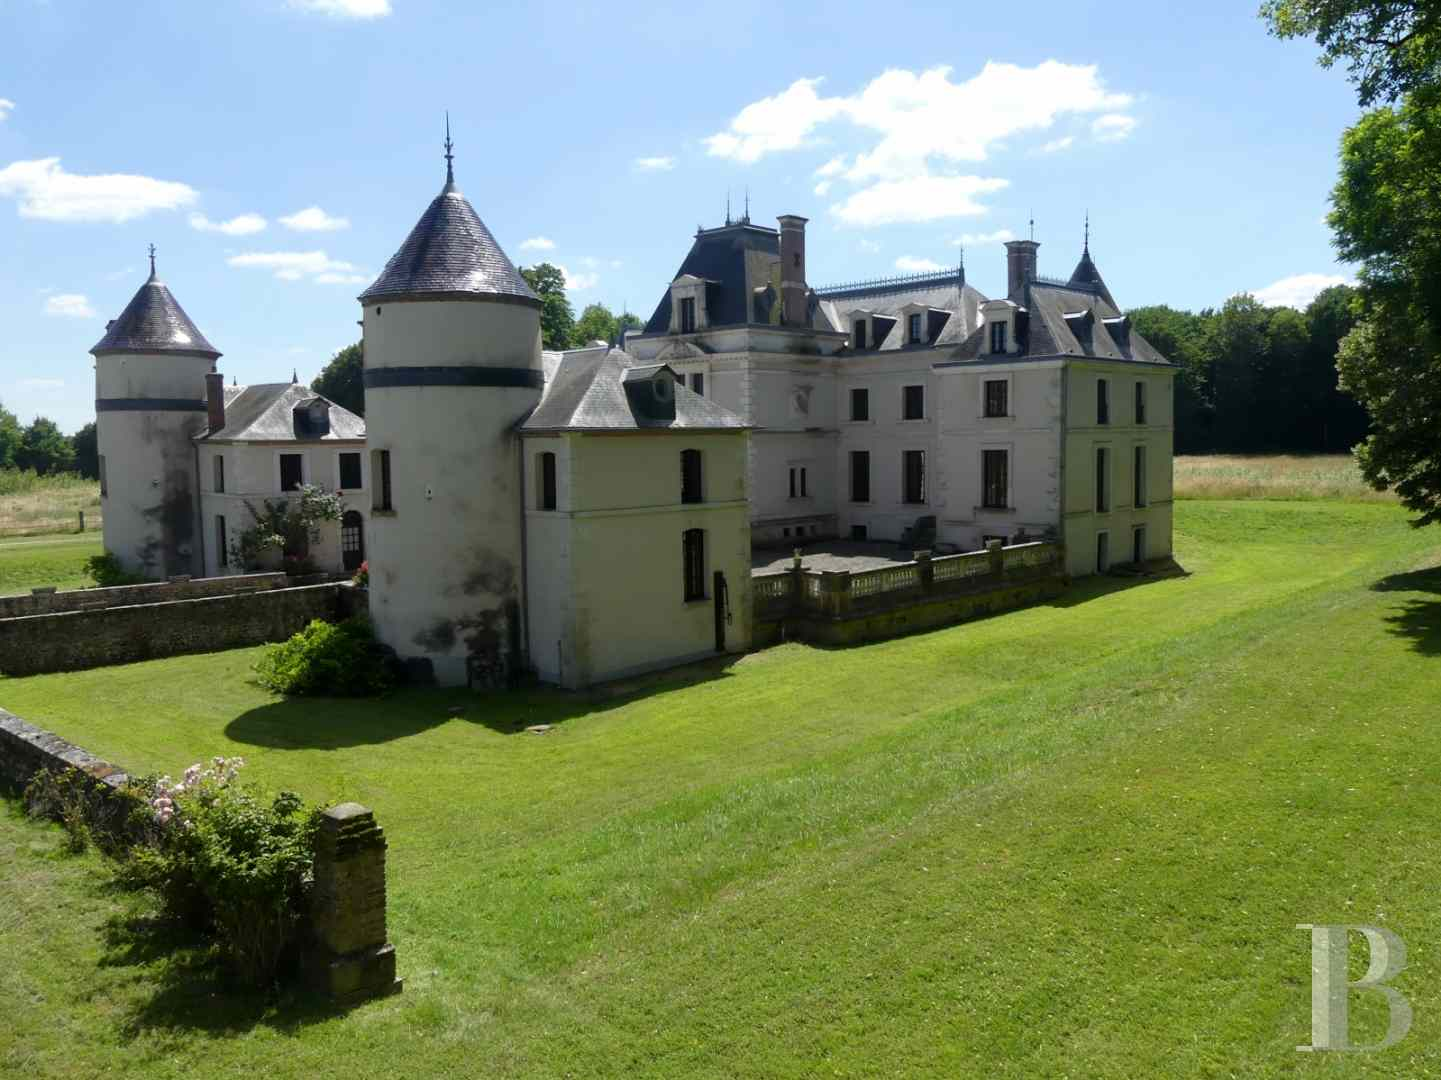 chateaux a vendre bourgogne chateau domaine - 5 zoom